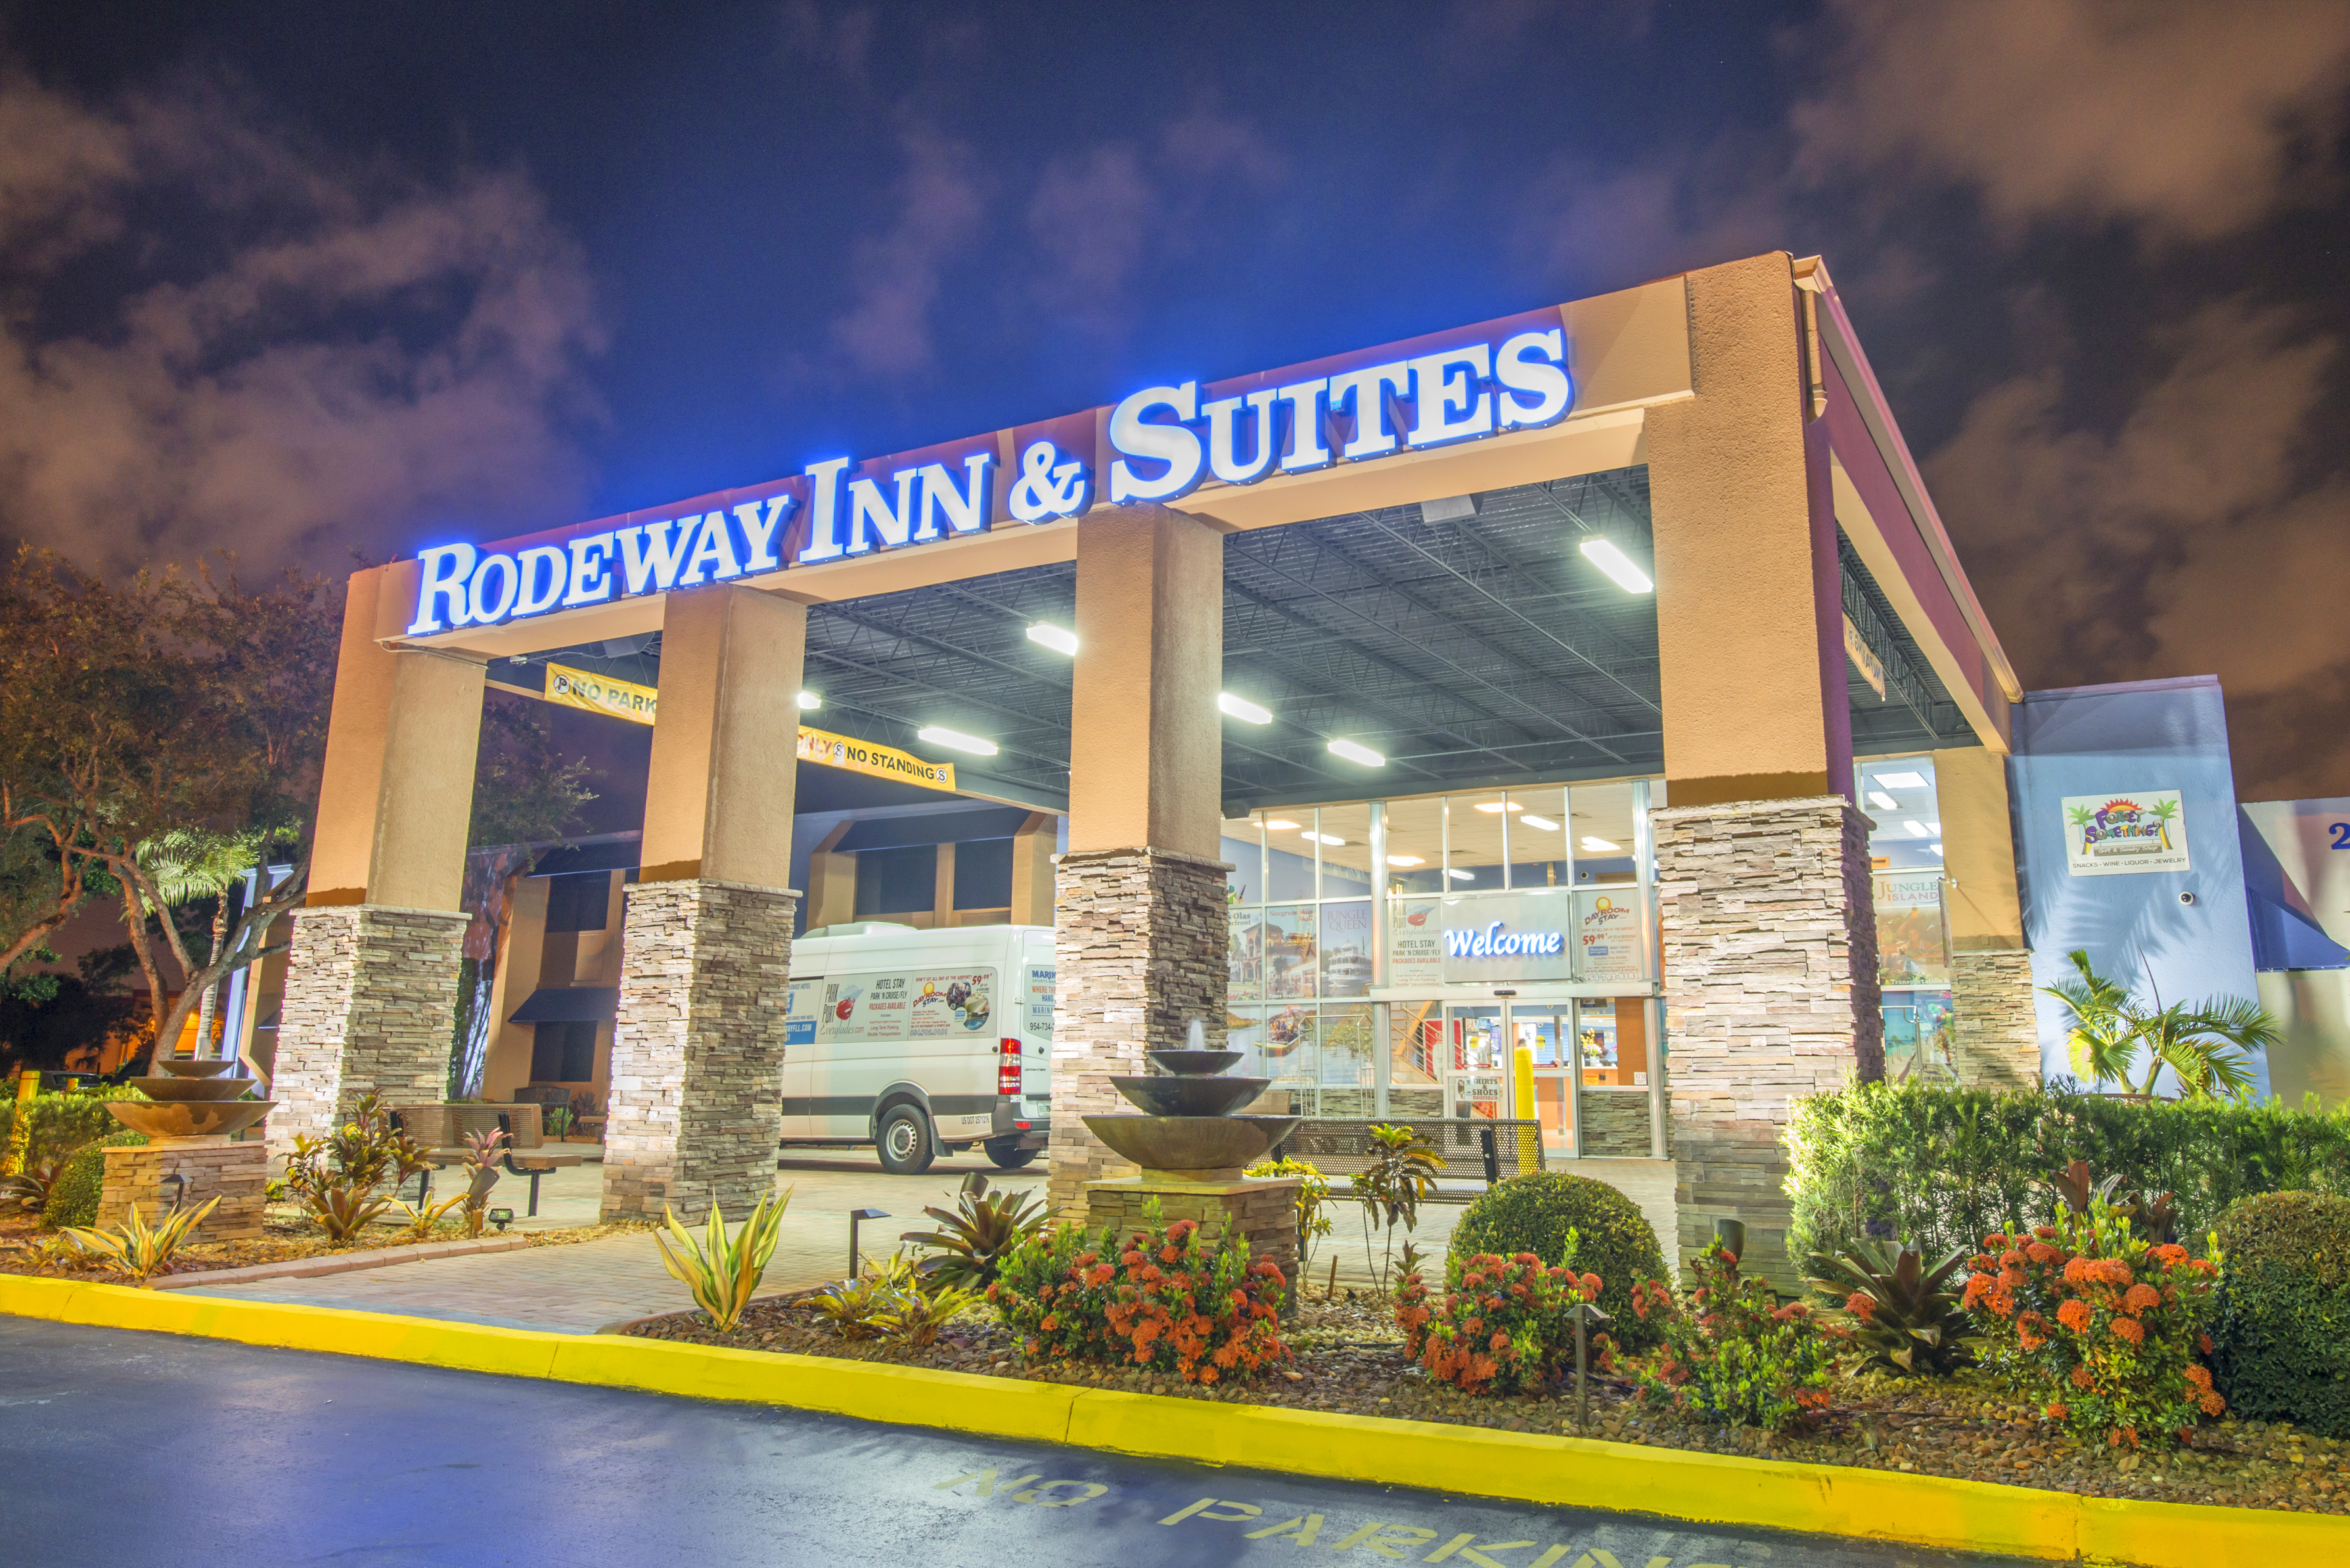 Rodeway Inn & Suites - Fort Lauderdale Airport & Port Everglades Cruise Port Hotel Ready for Arrival of MS Koningsdam